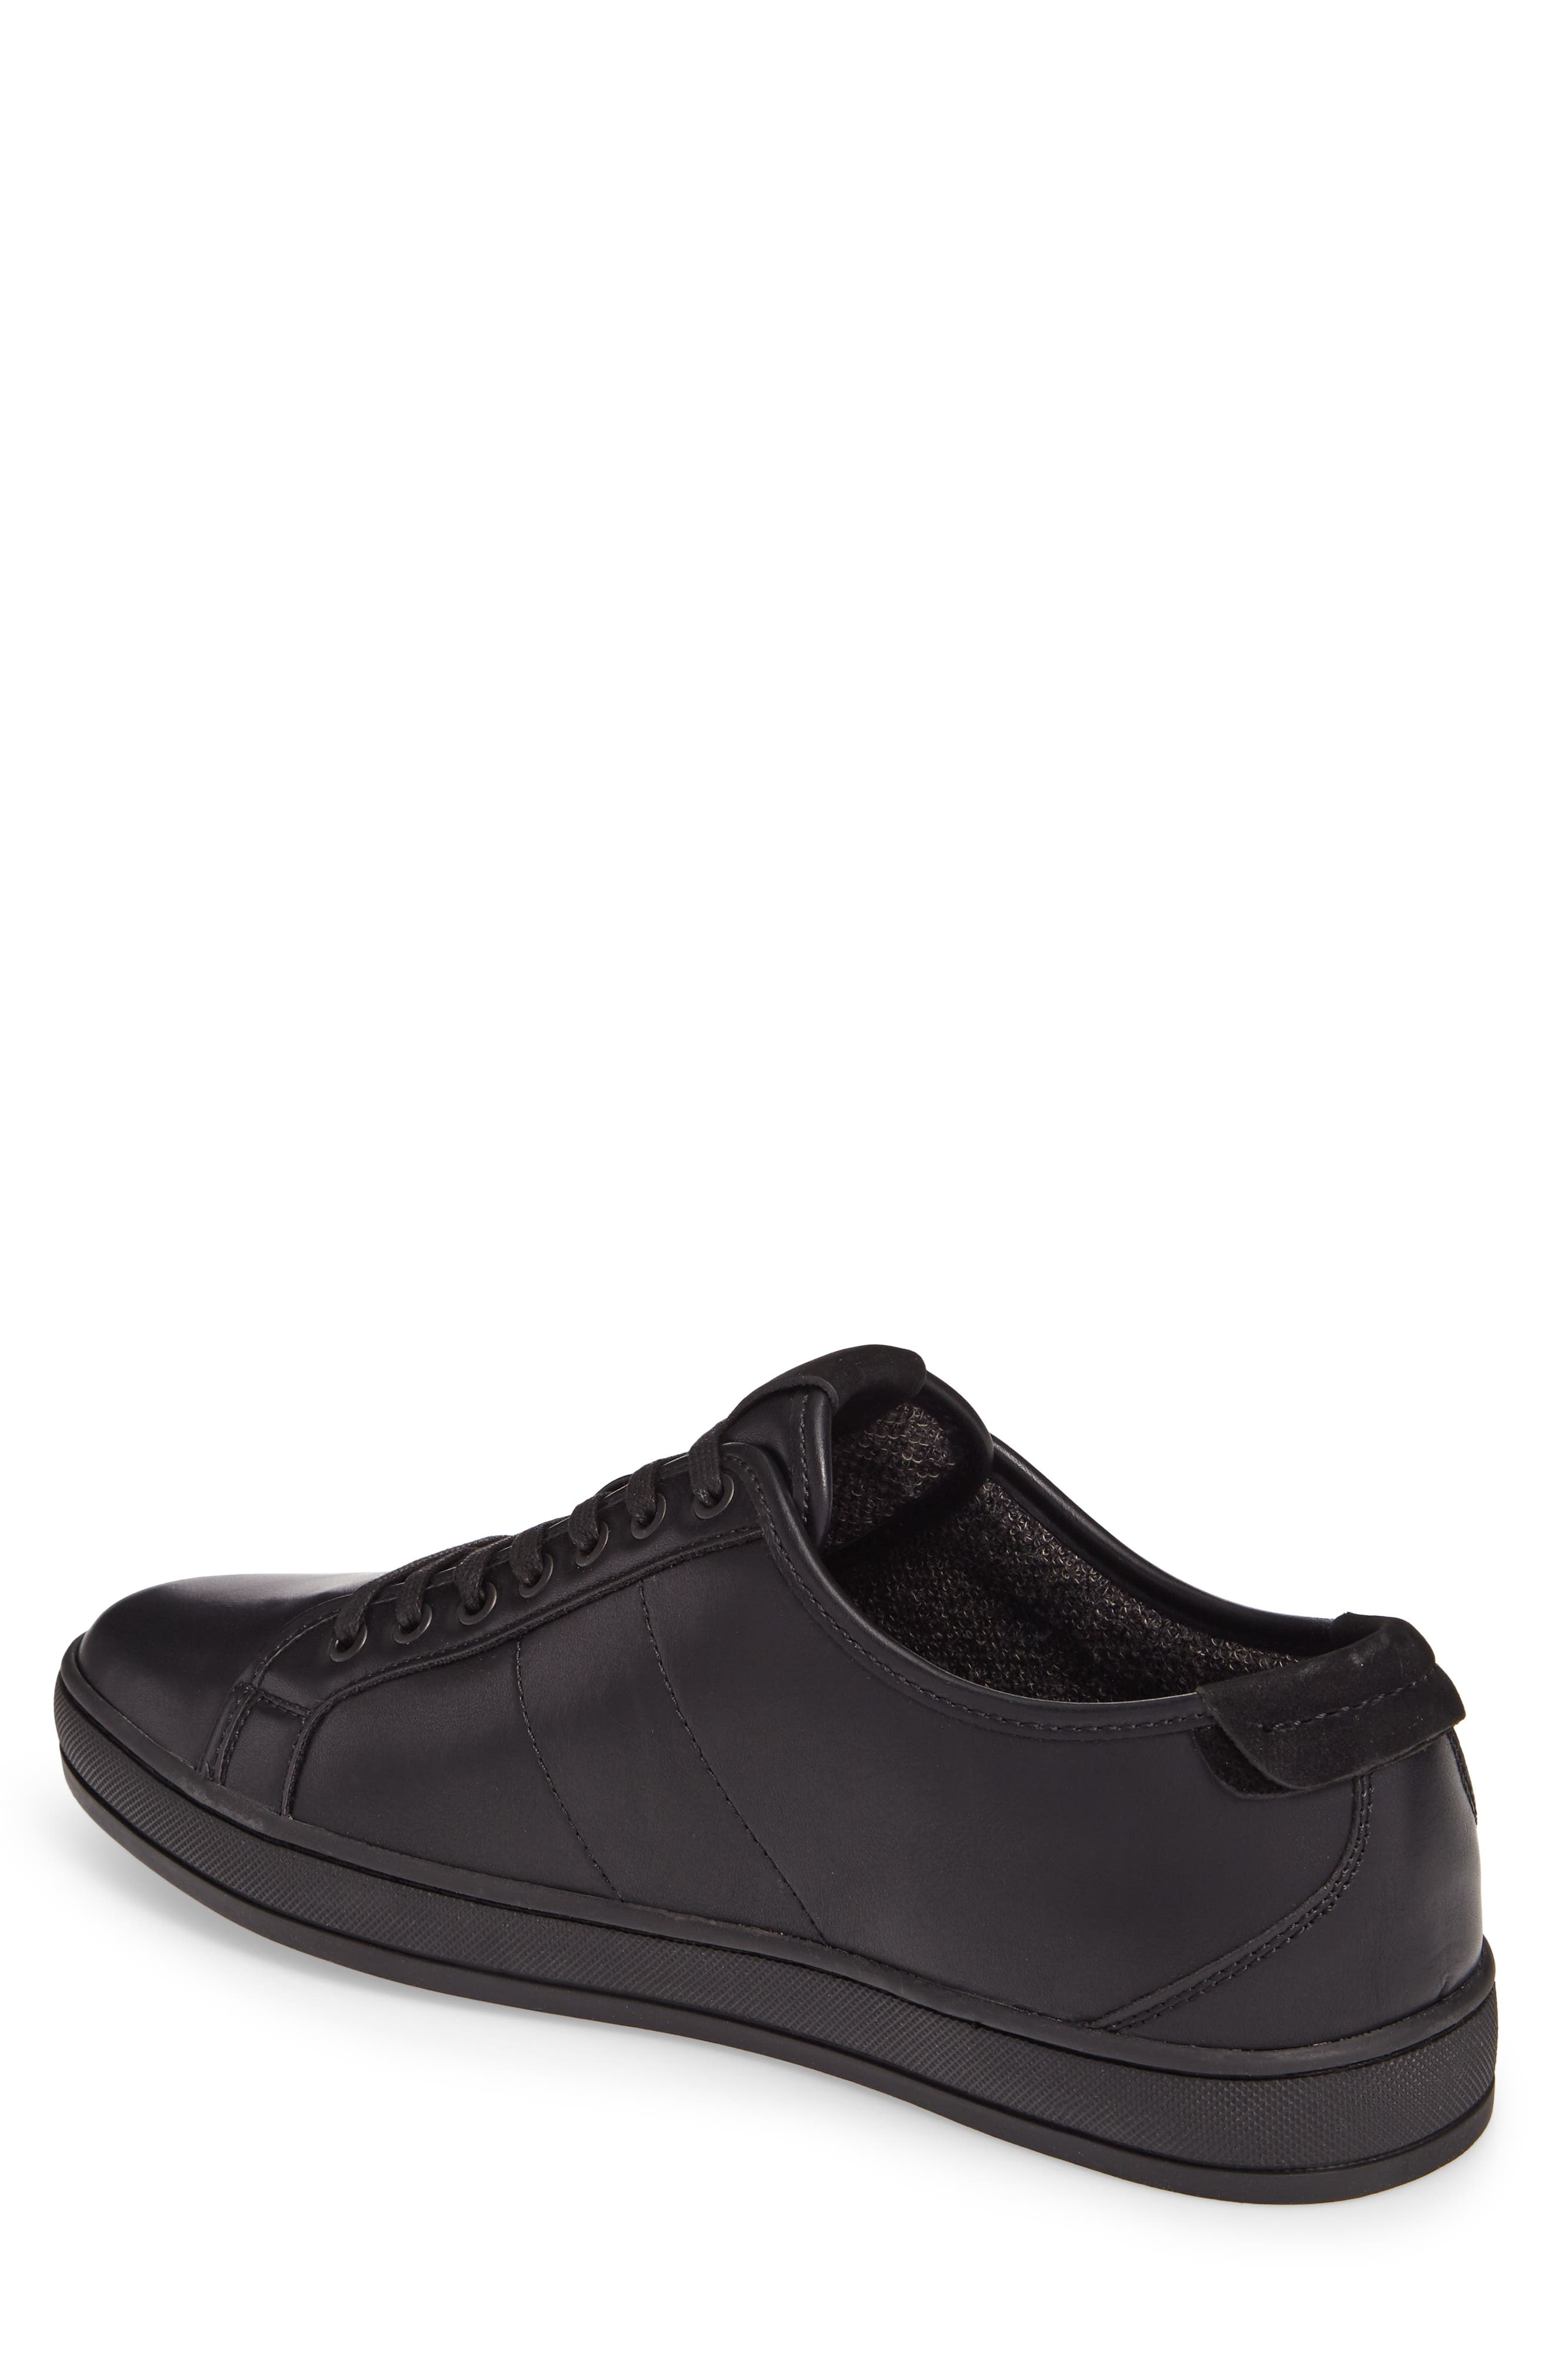 Delello Low-Top Sneaker,                             Alternate thumbnail 2, color,                             001